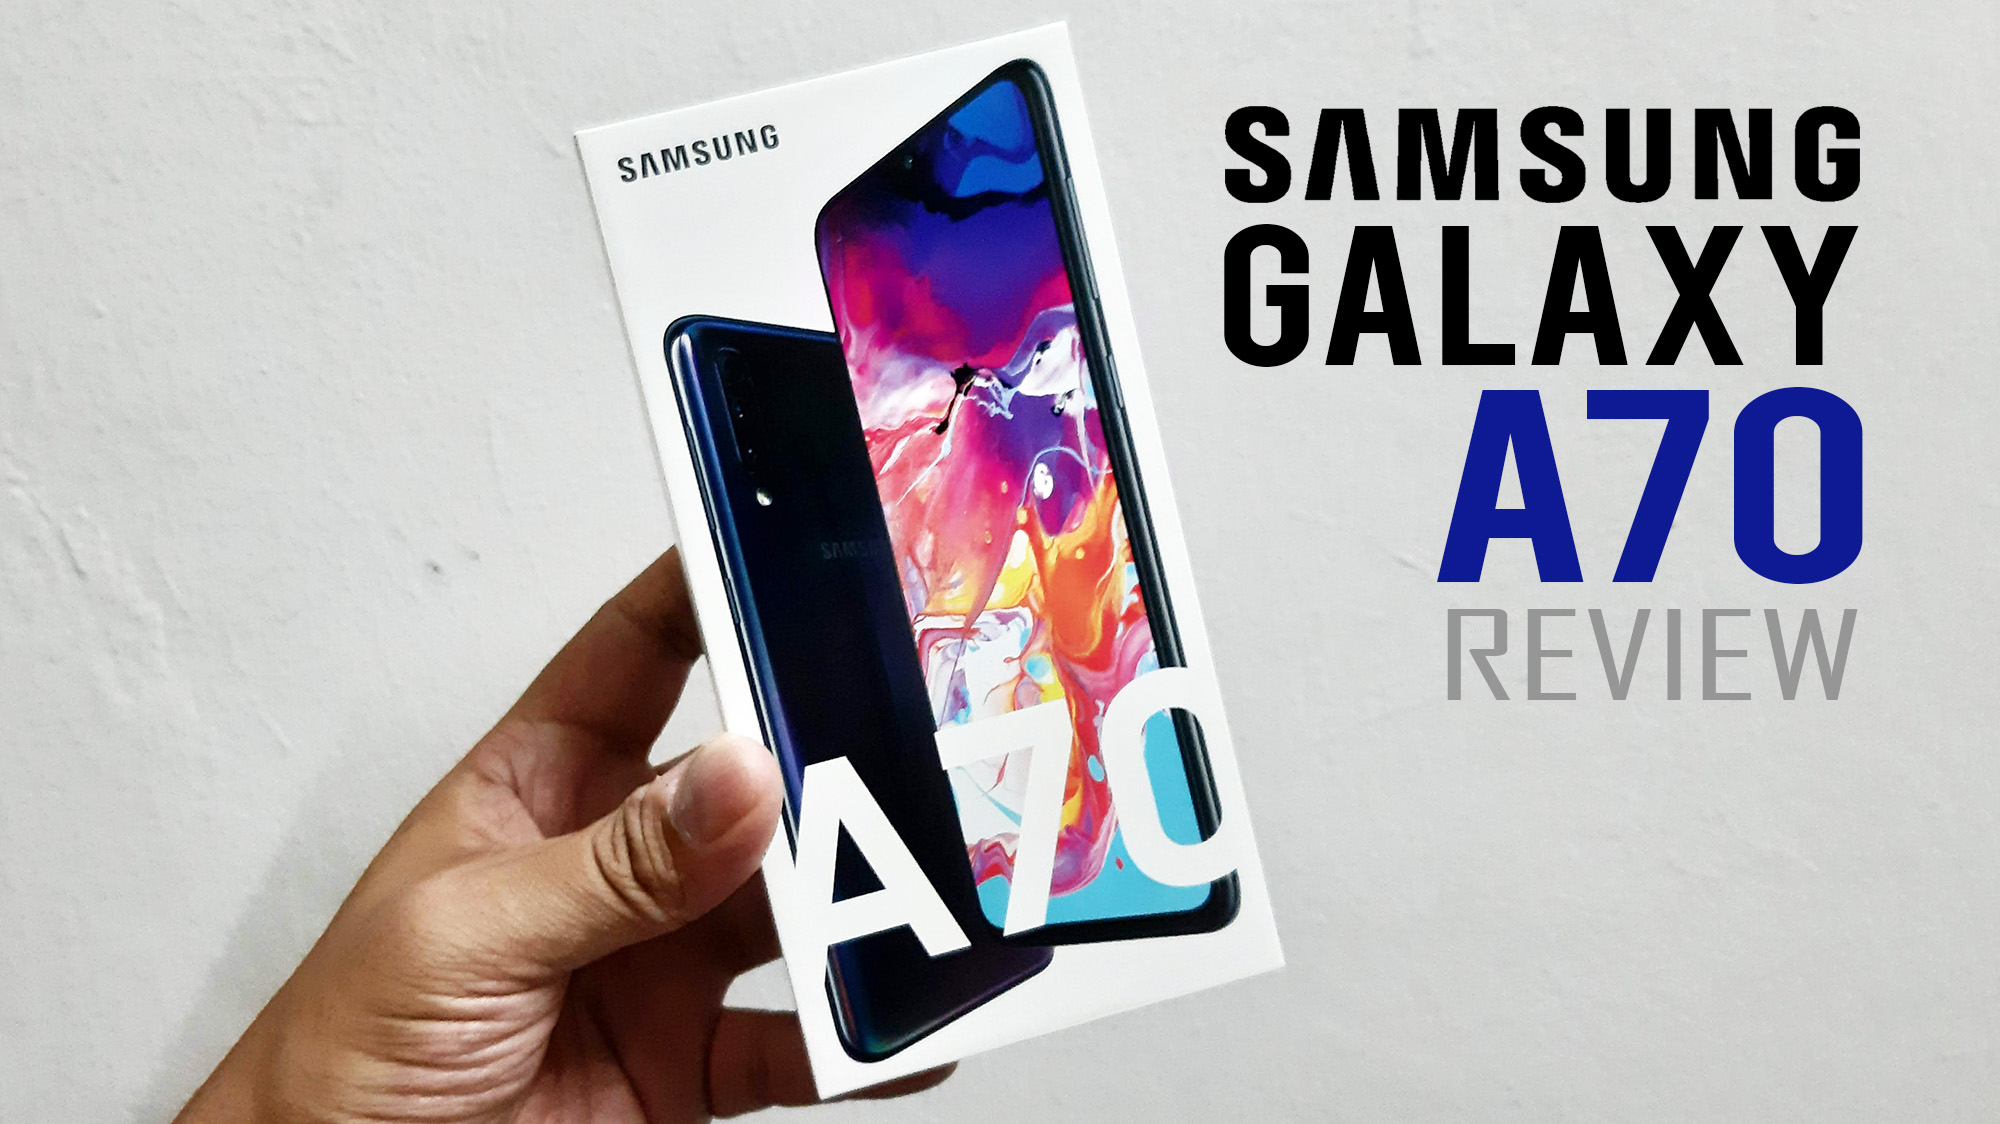 Samsung Galaxy A70 Review